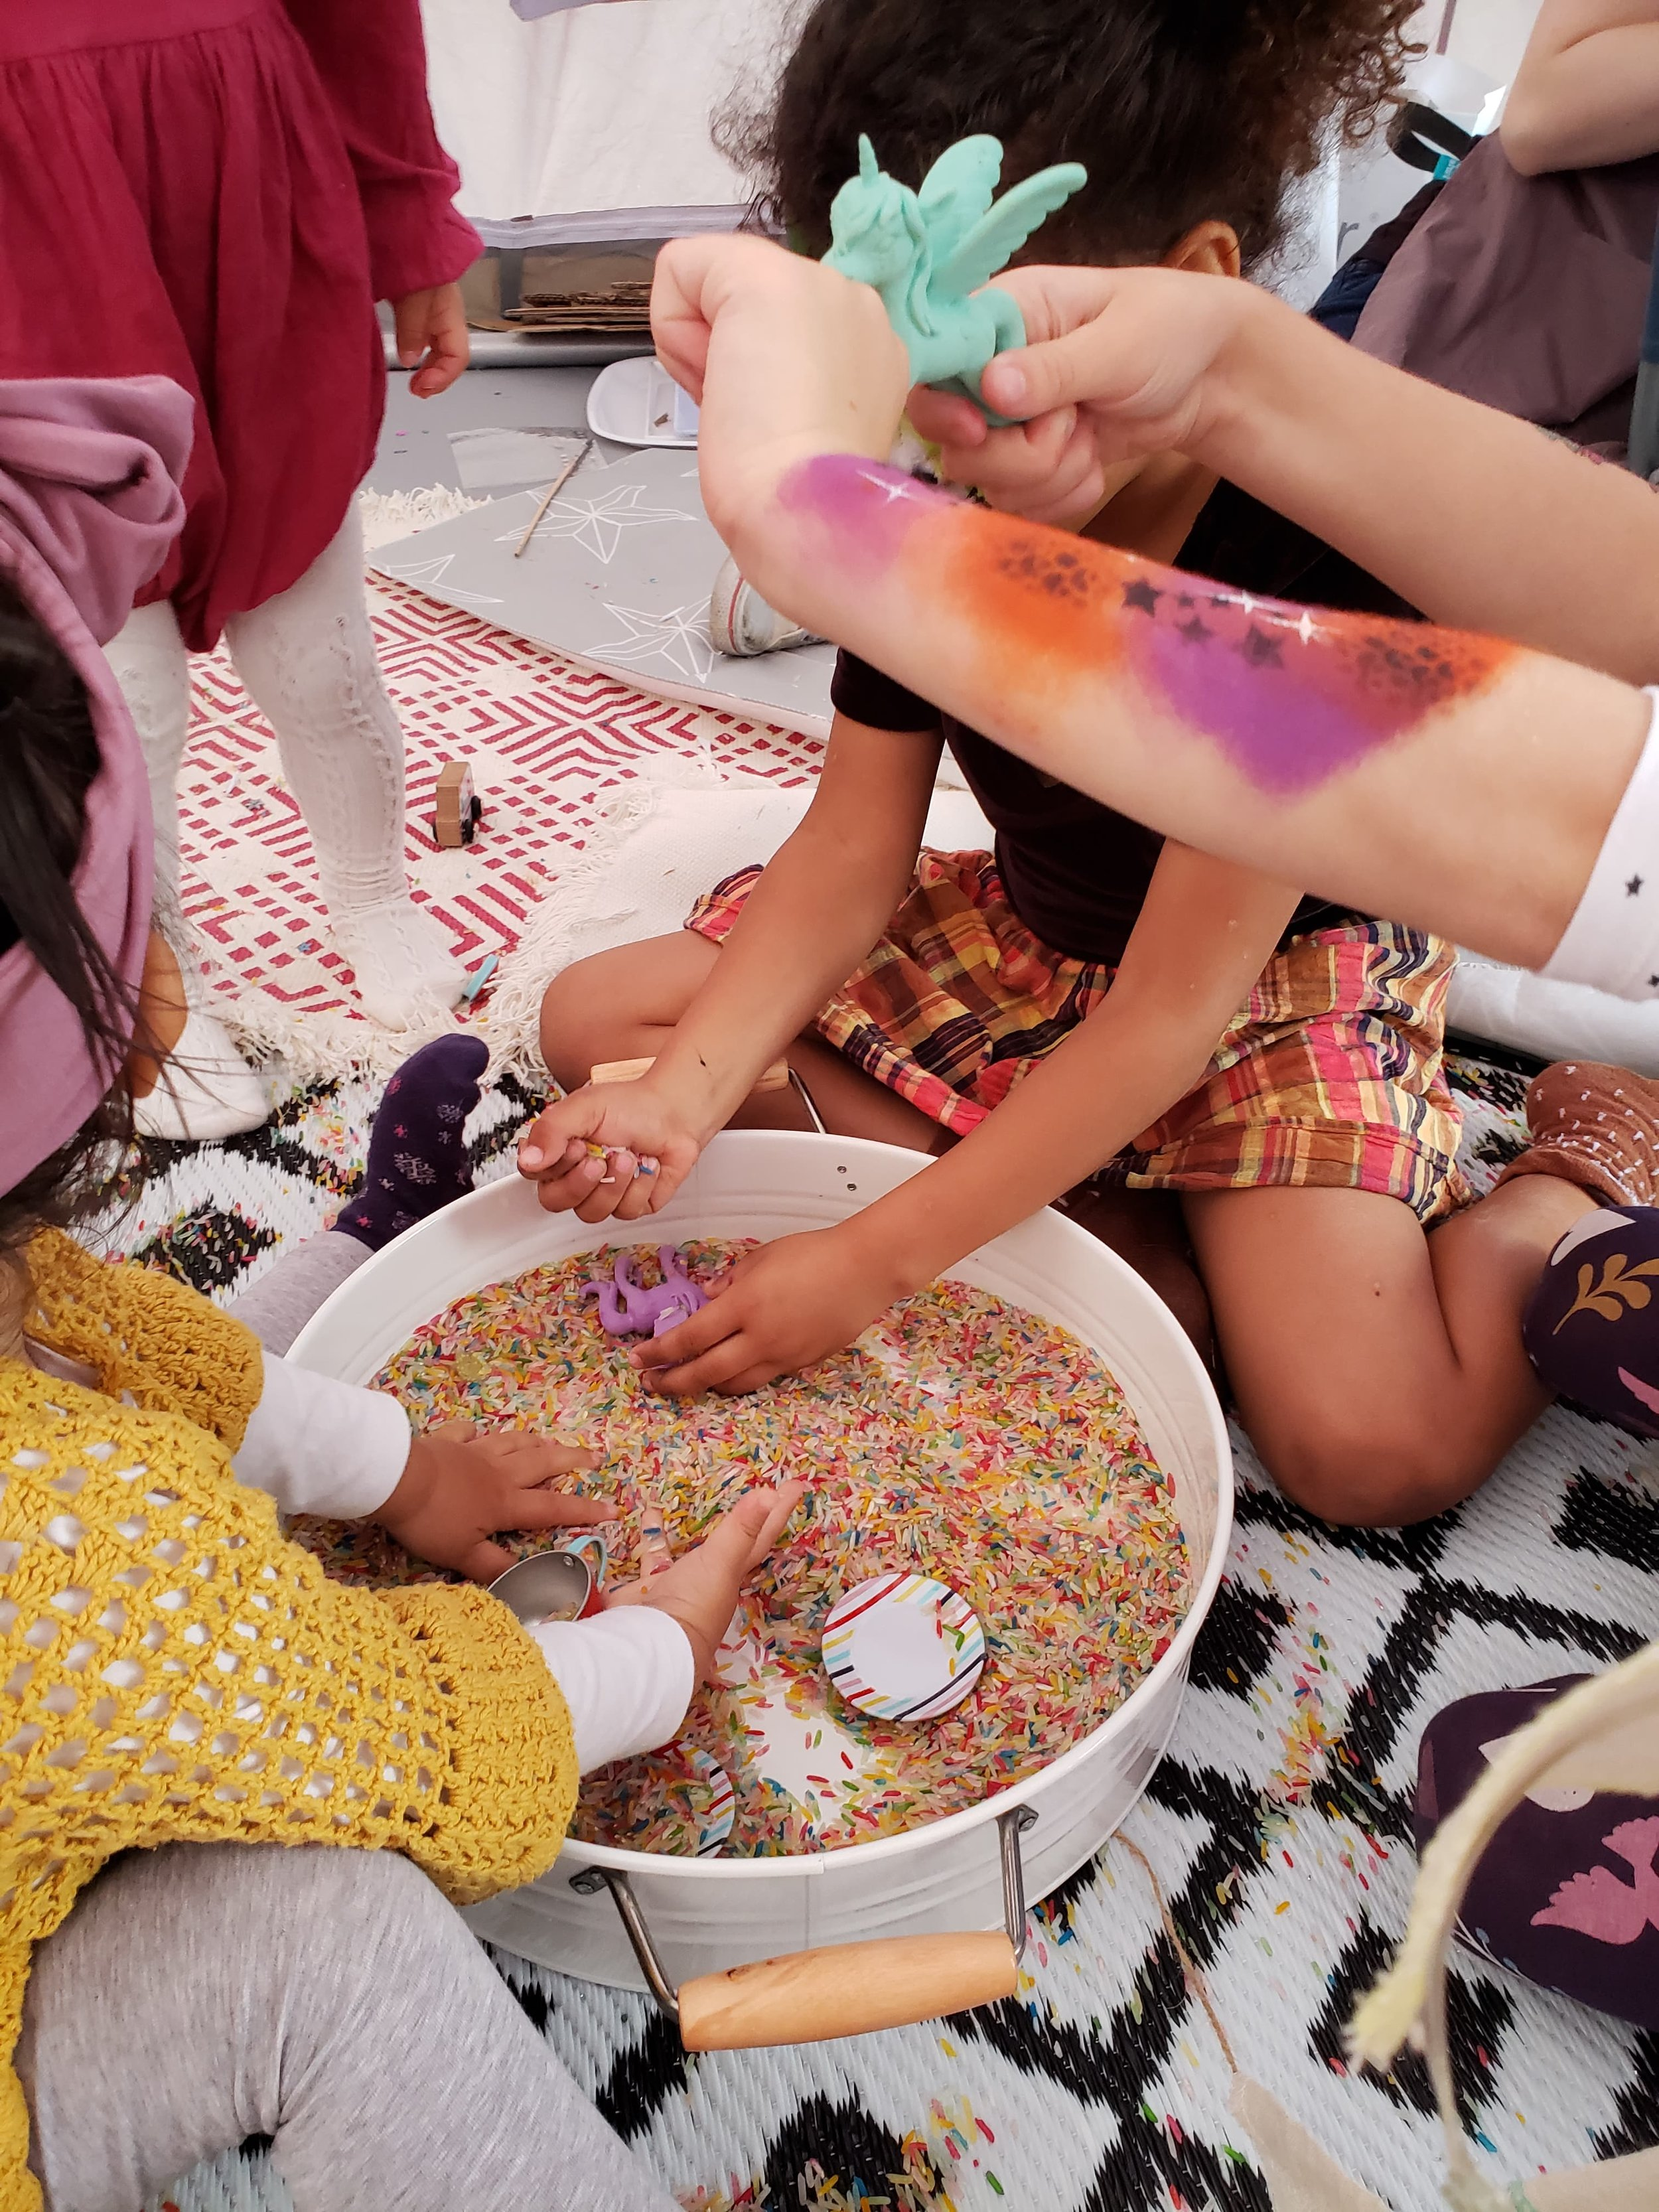 Sensory play engages ALL senses - Children learn best and are able to retain more information when all senses are engaged.During sensory play, the brain makes connections as they learn pre-math skills such as comparing size or volume (which cup can hold more rainbow rice). They also build on science skills such as gravity (the rice goes down the funnel when I pour it) and cause and effect (what happens when I squish rainbow rice vs. squishing playdough?).Children exercise their creativity and imagination as sensory play provides open-ended learning opportunities. This prompts kids to think creatively to solve problems or to engage in make believe scenarios while they are at play.Sensory play activities help children to use descriptive and expressive language, as they experience the true meaning of the word: grainy, loose.Sensory play activities strengthens fine motor skills and develops pre-writing skills as they pour, spoon, mix, scoop, measure, grasp and squish.Sensory play activities allow children to be in complete control of their actions and experiences. This in turn inspires them to learn and experiment. It also boosts their confidence in decision making.